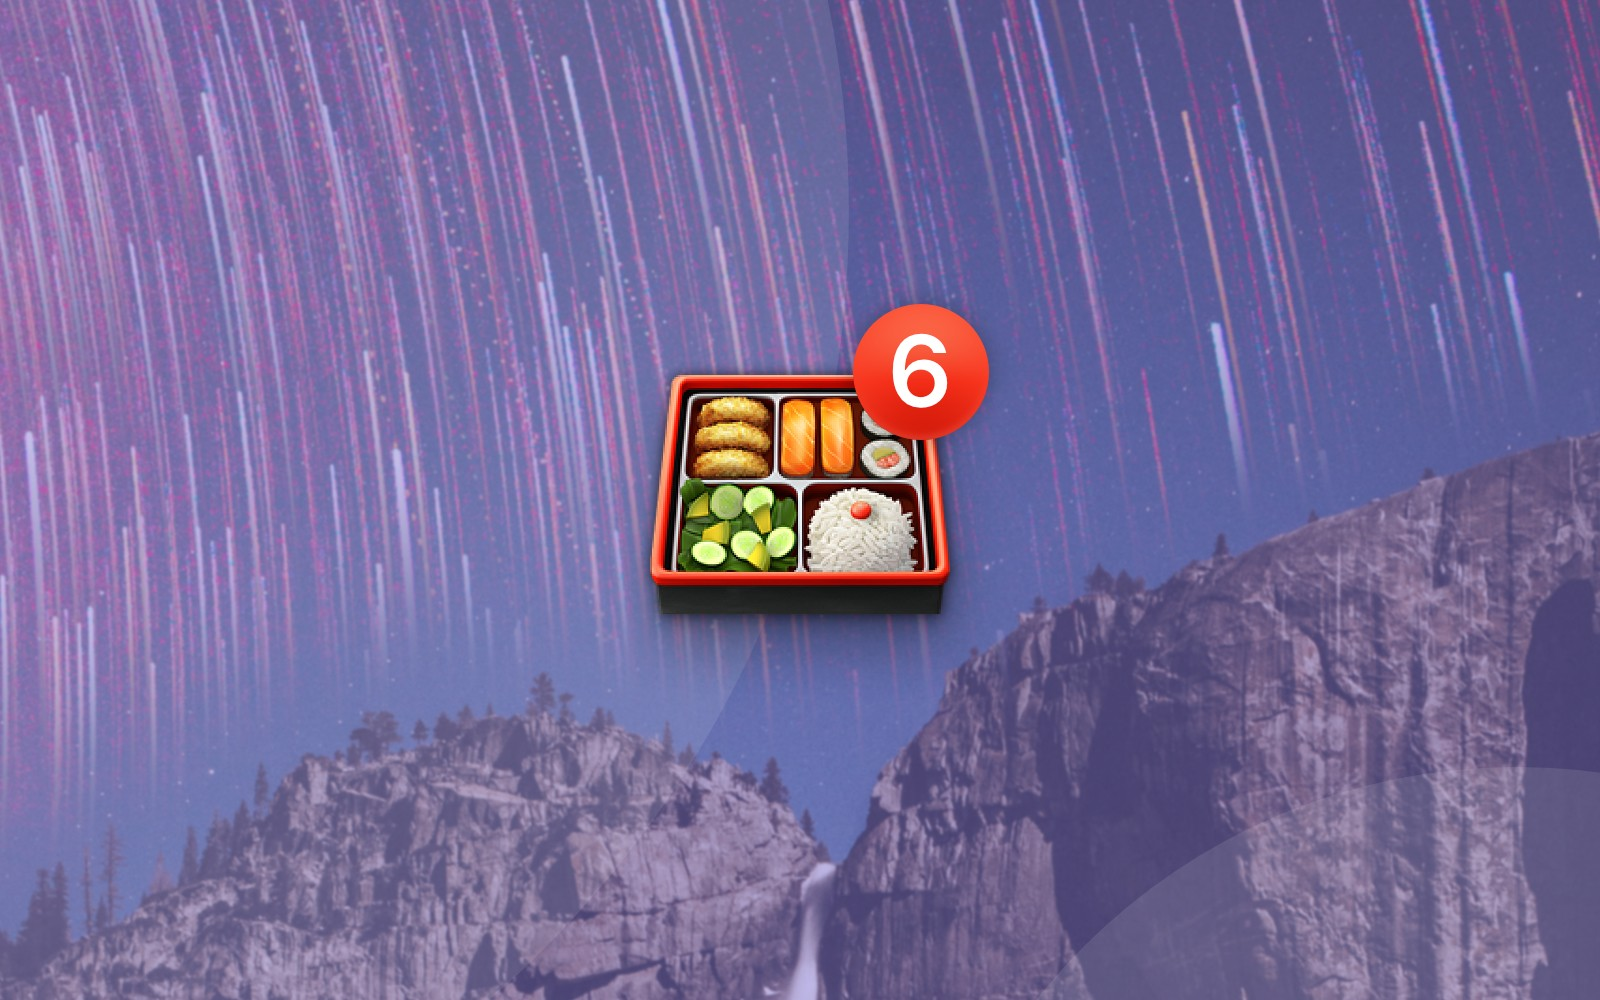 Bento box emoji with number 6 badge on mountainside with stars background